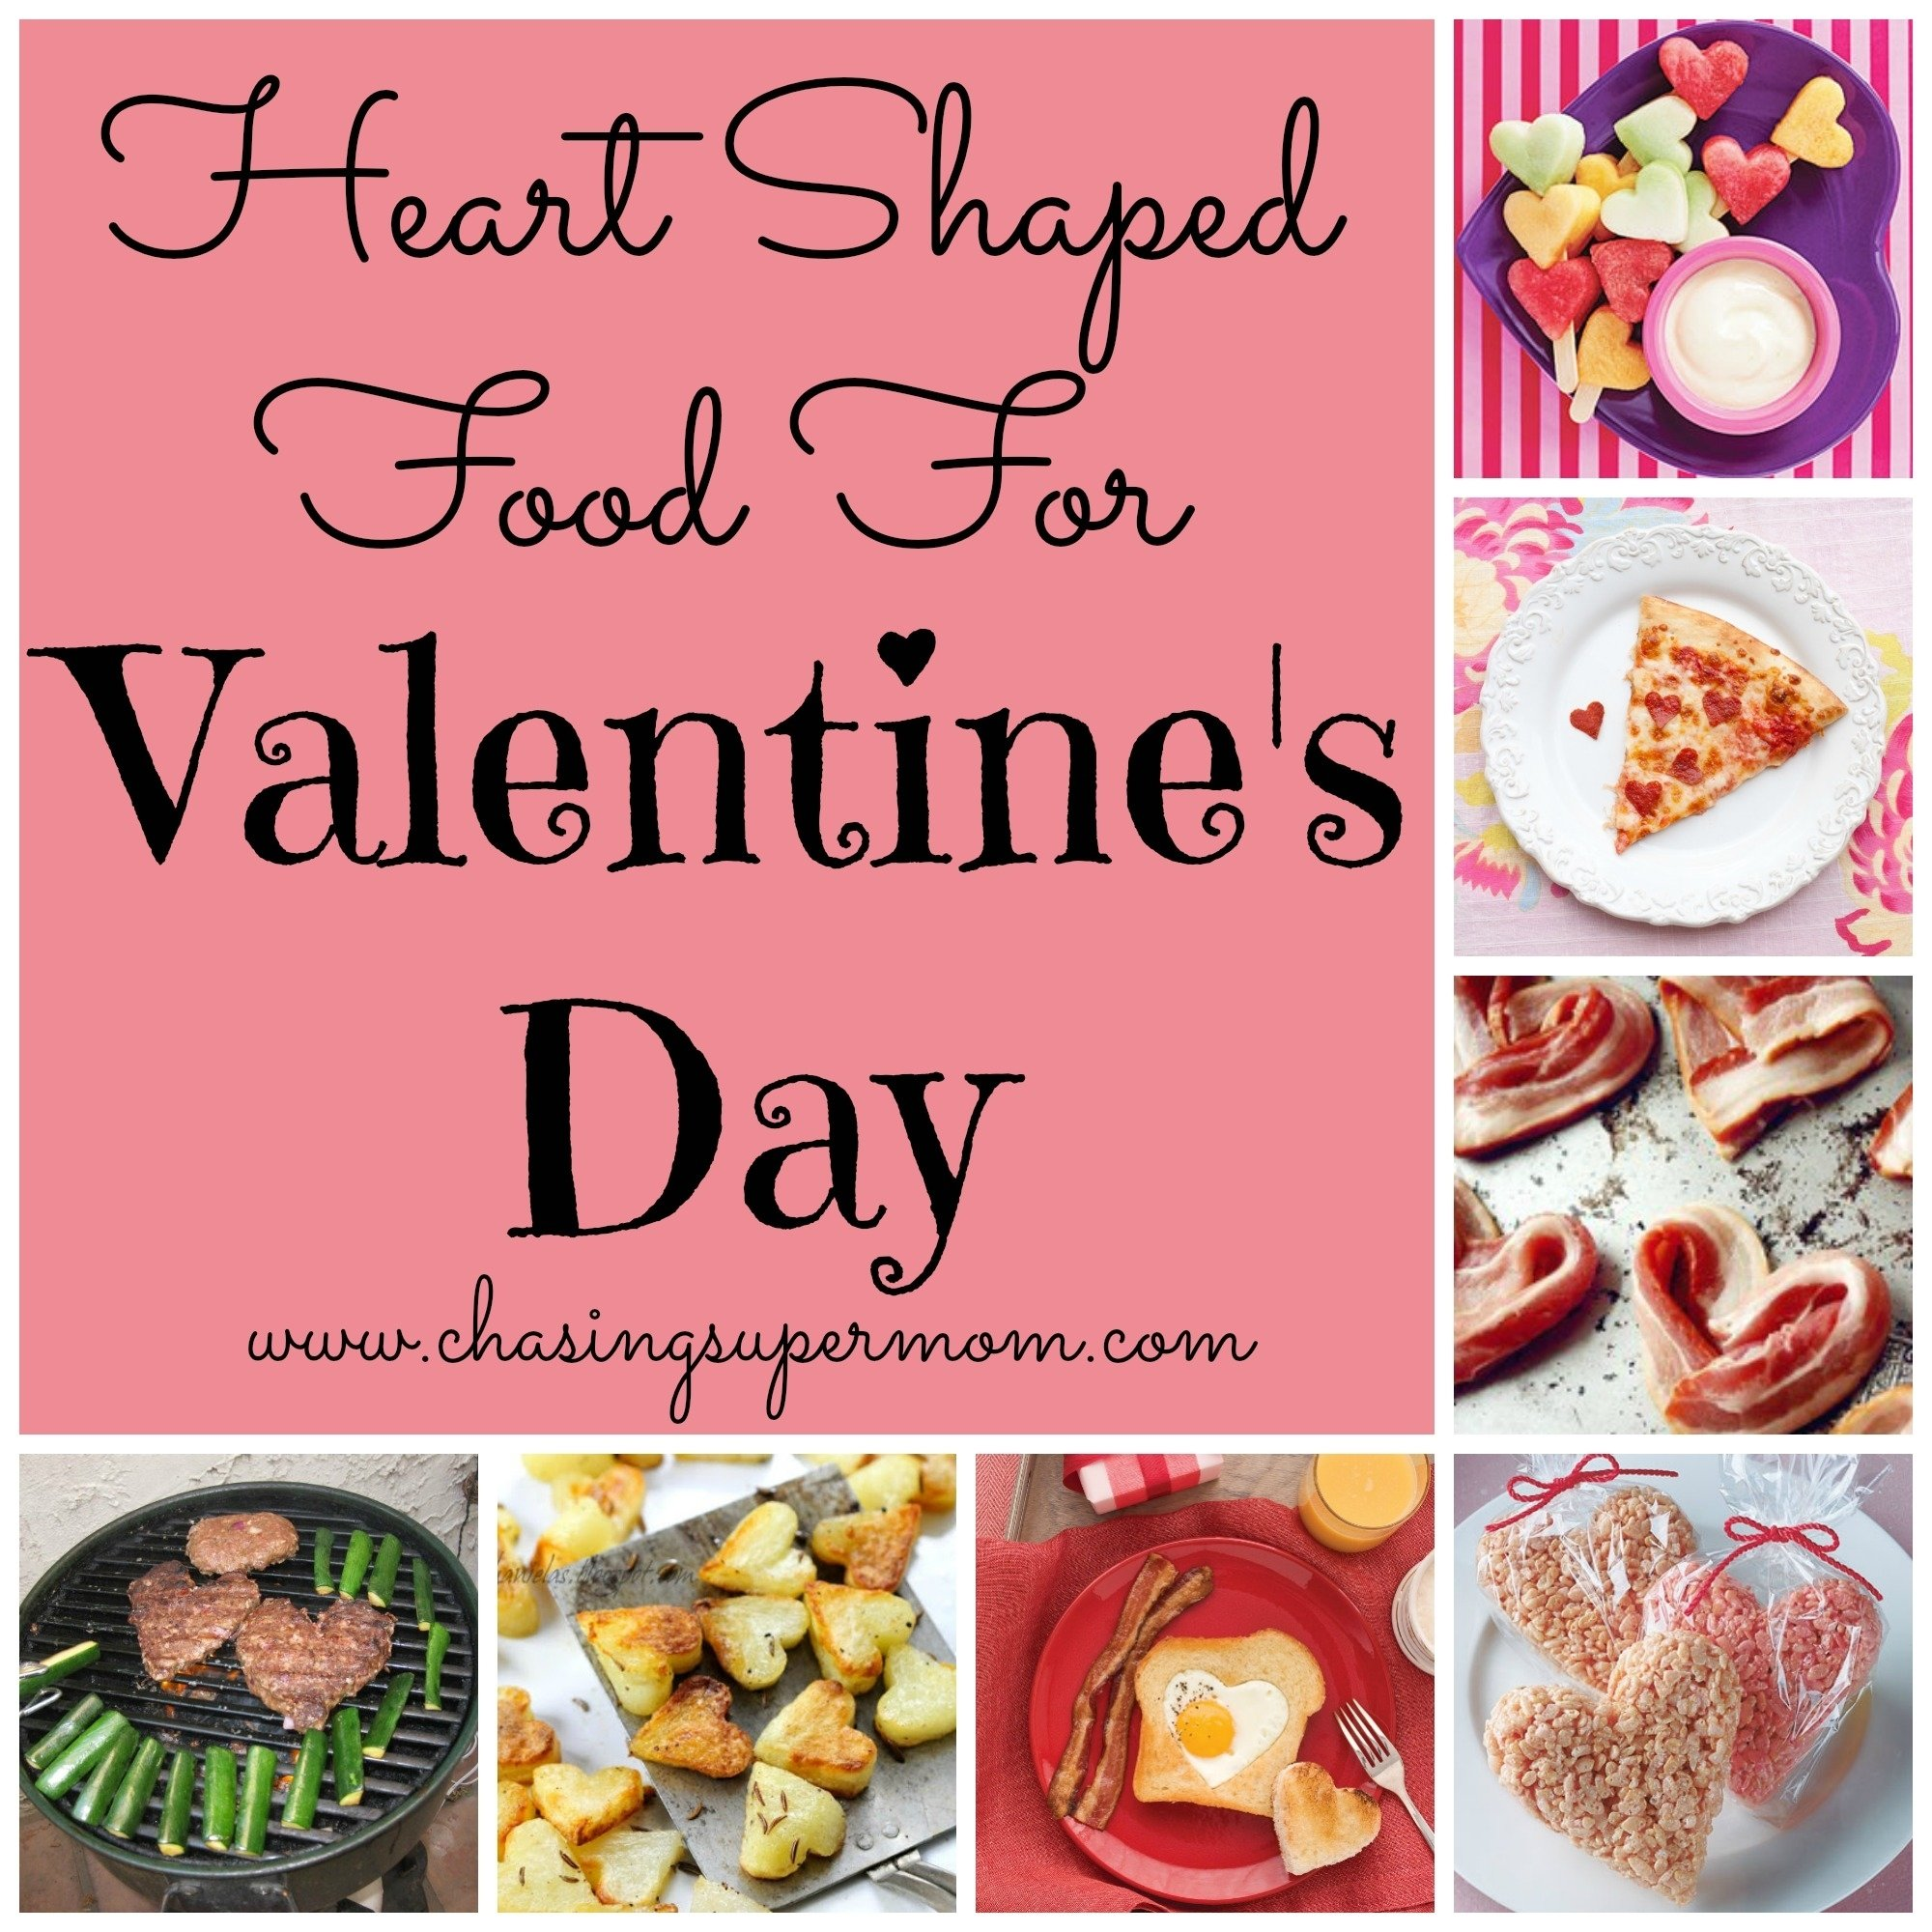 10 Stylish Food Day Ideas For Work valentines day food ideas heart shaped food chasing supermom 3 2020